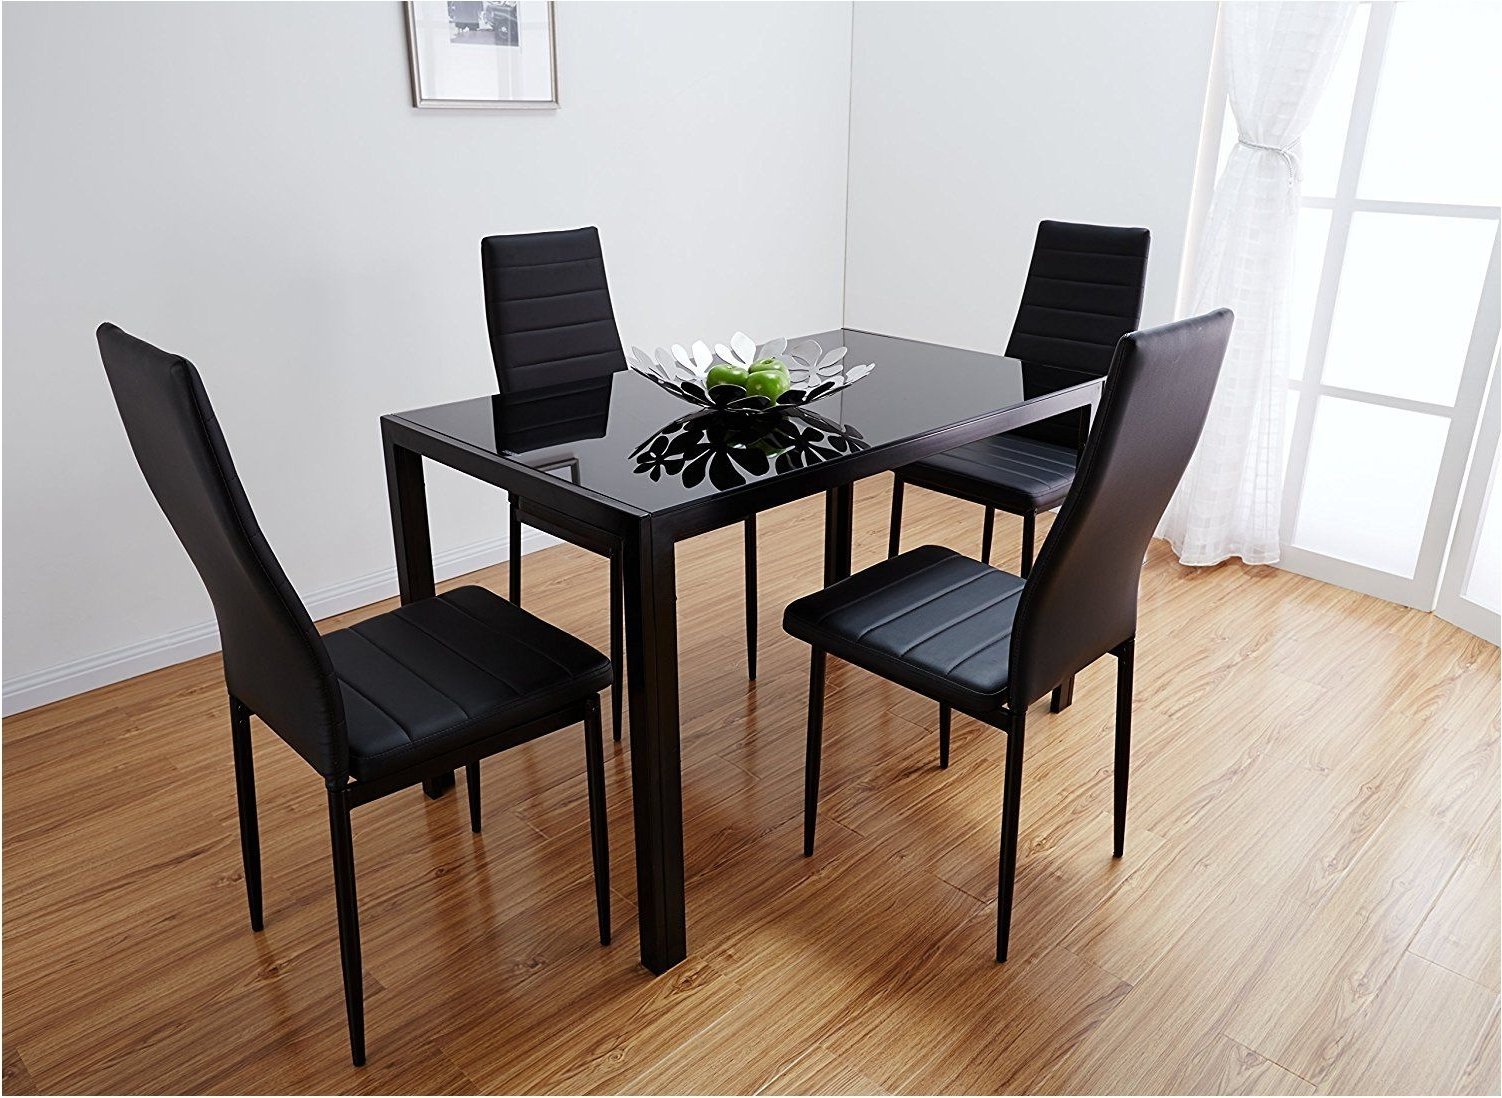 Nice Black Glass Dining Table Set With 4 Faux Leather Chairs Brand For Most Popular Black Glass Dining Tables And 6 Chairs (View 9 of 25)